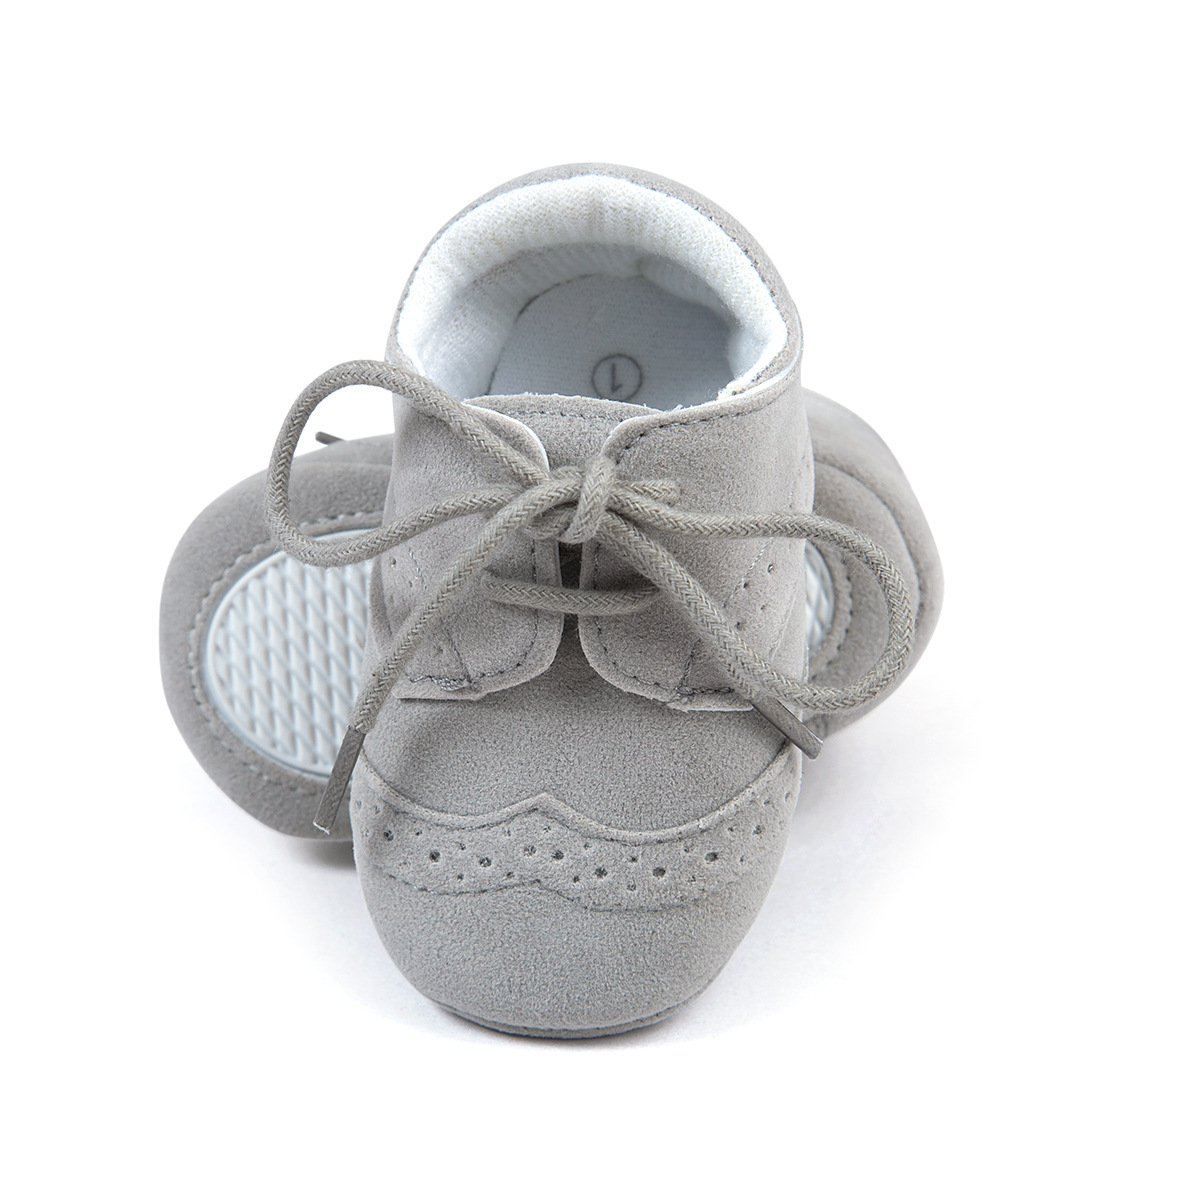 H M Baby Shoe Size